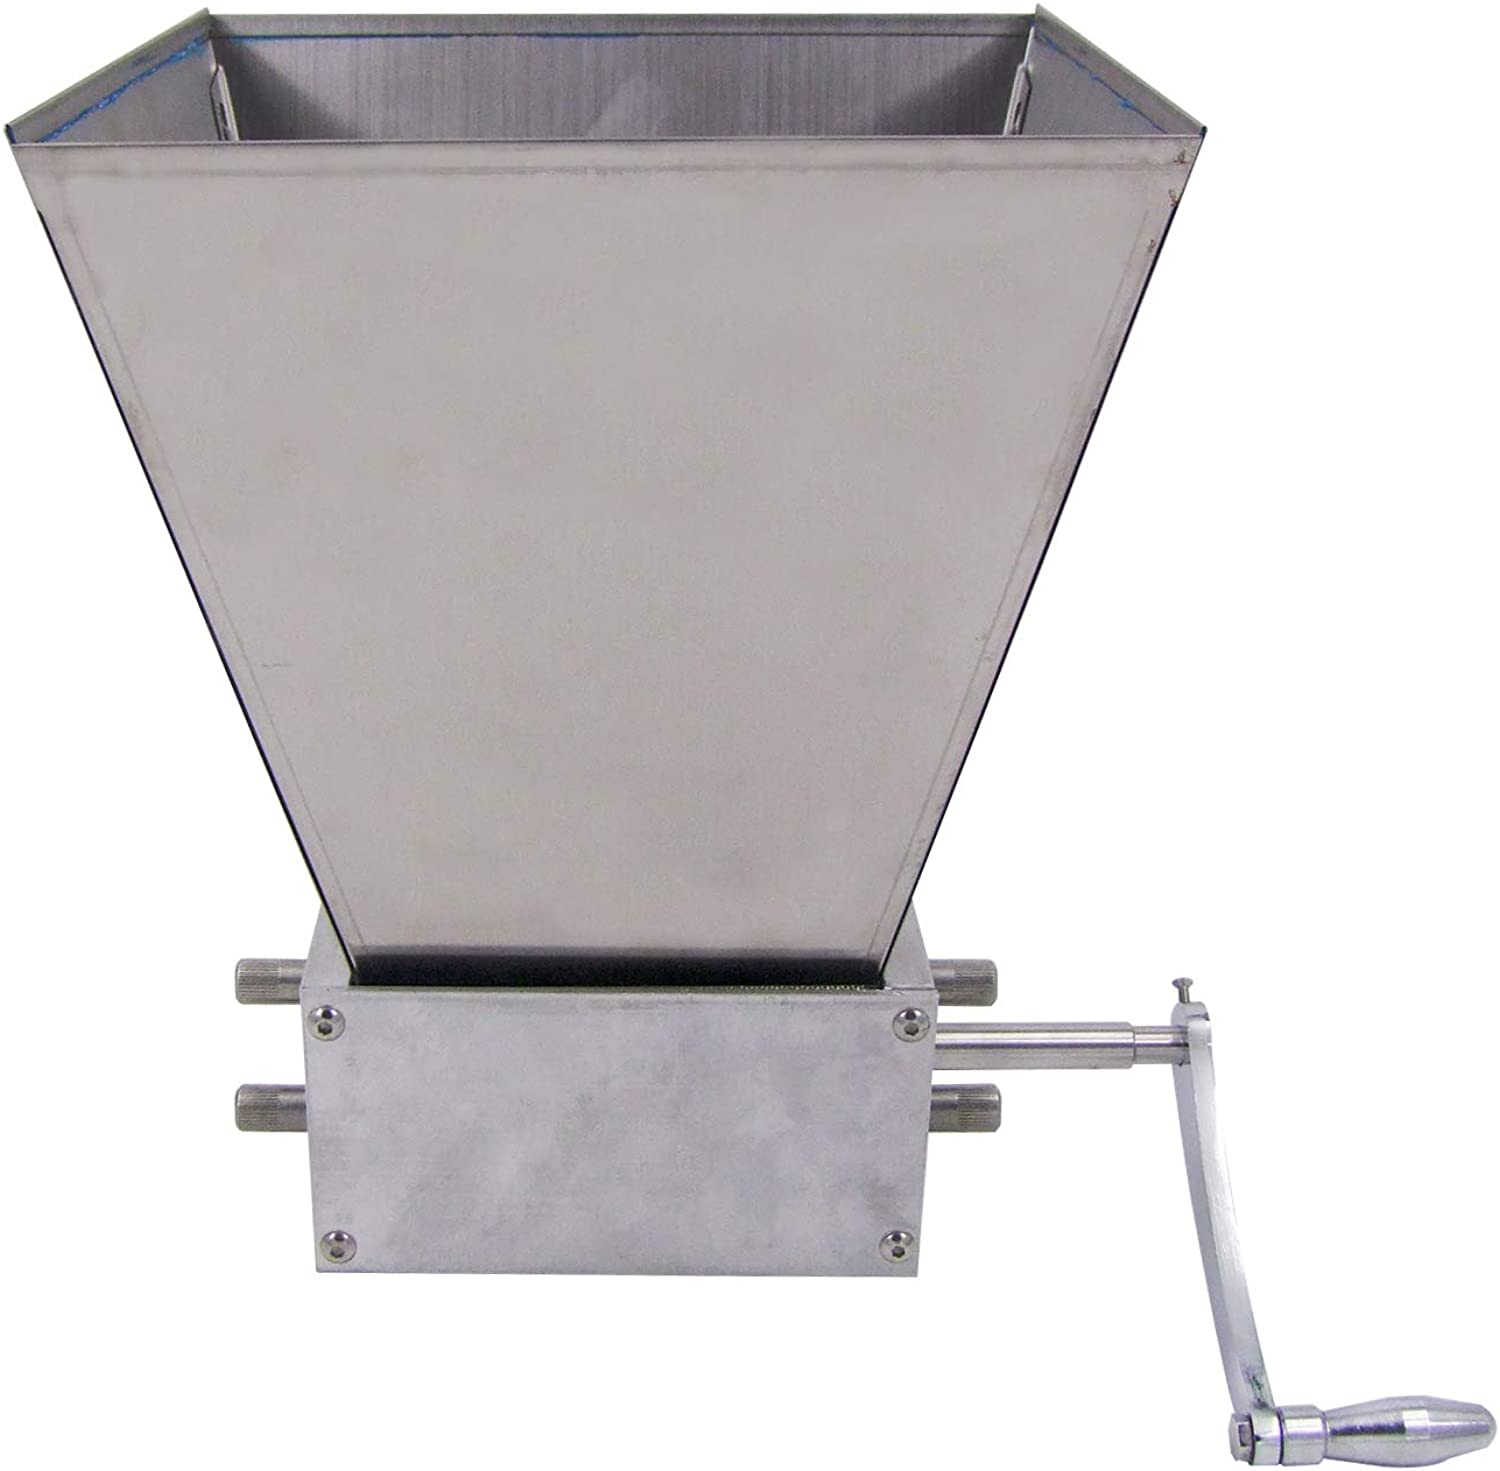 HFS (R) Grain Mill with 11 lb. Hopper and 3 Rollers,Stainless Steel Three Roller Malt Mill